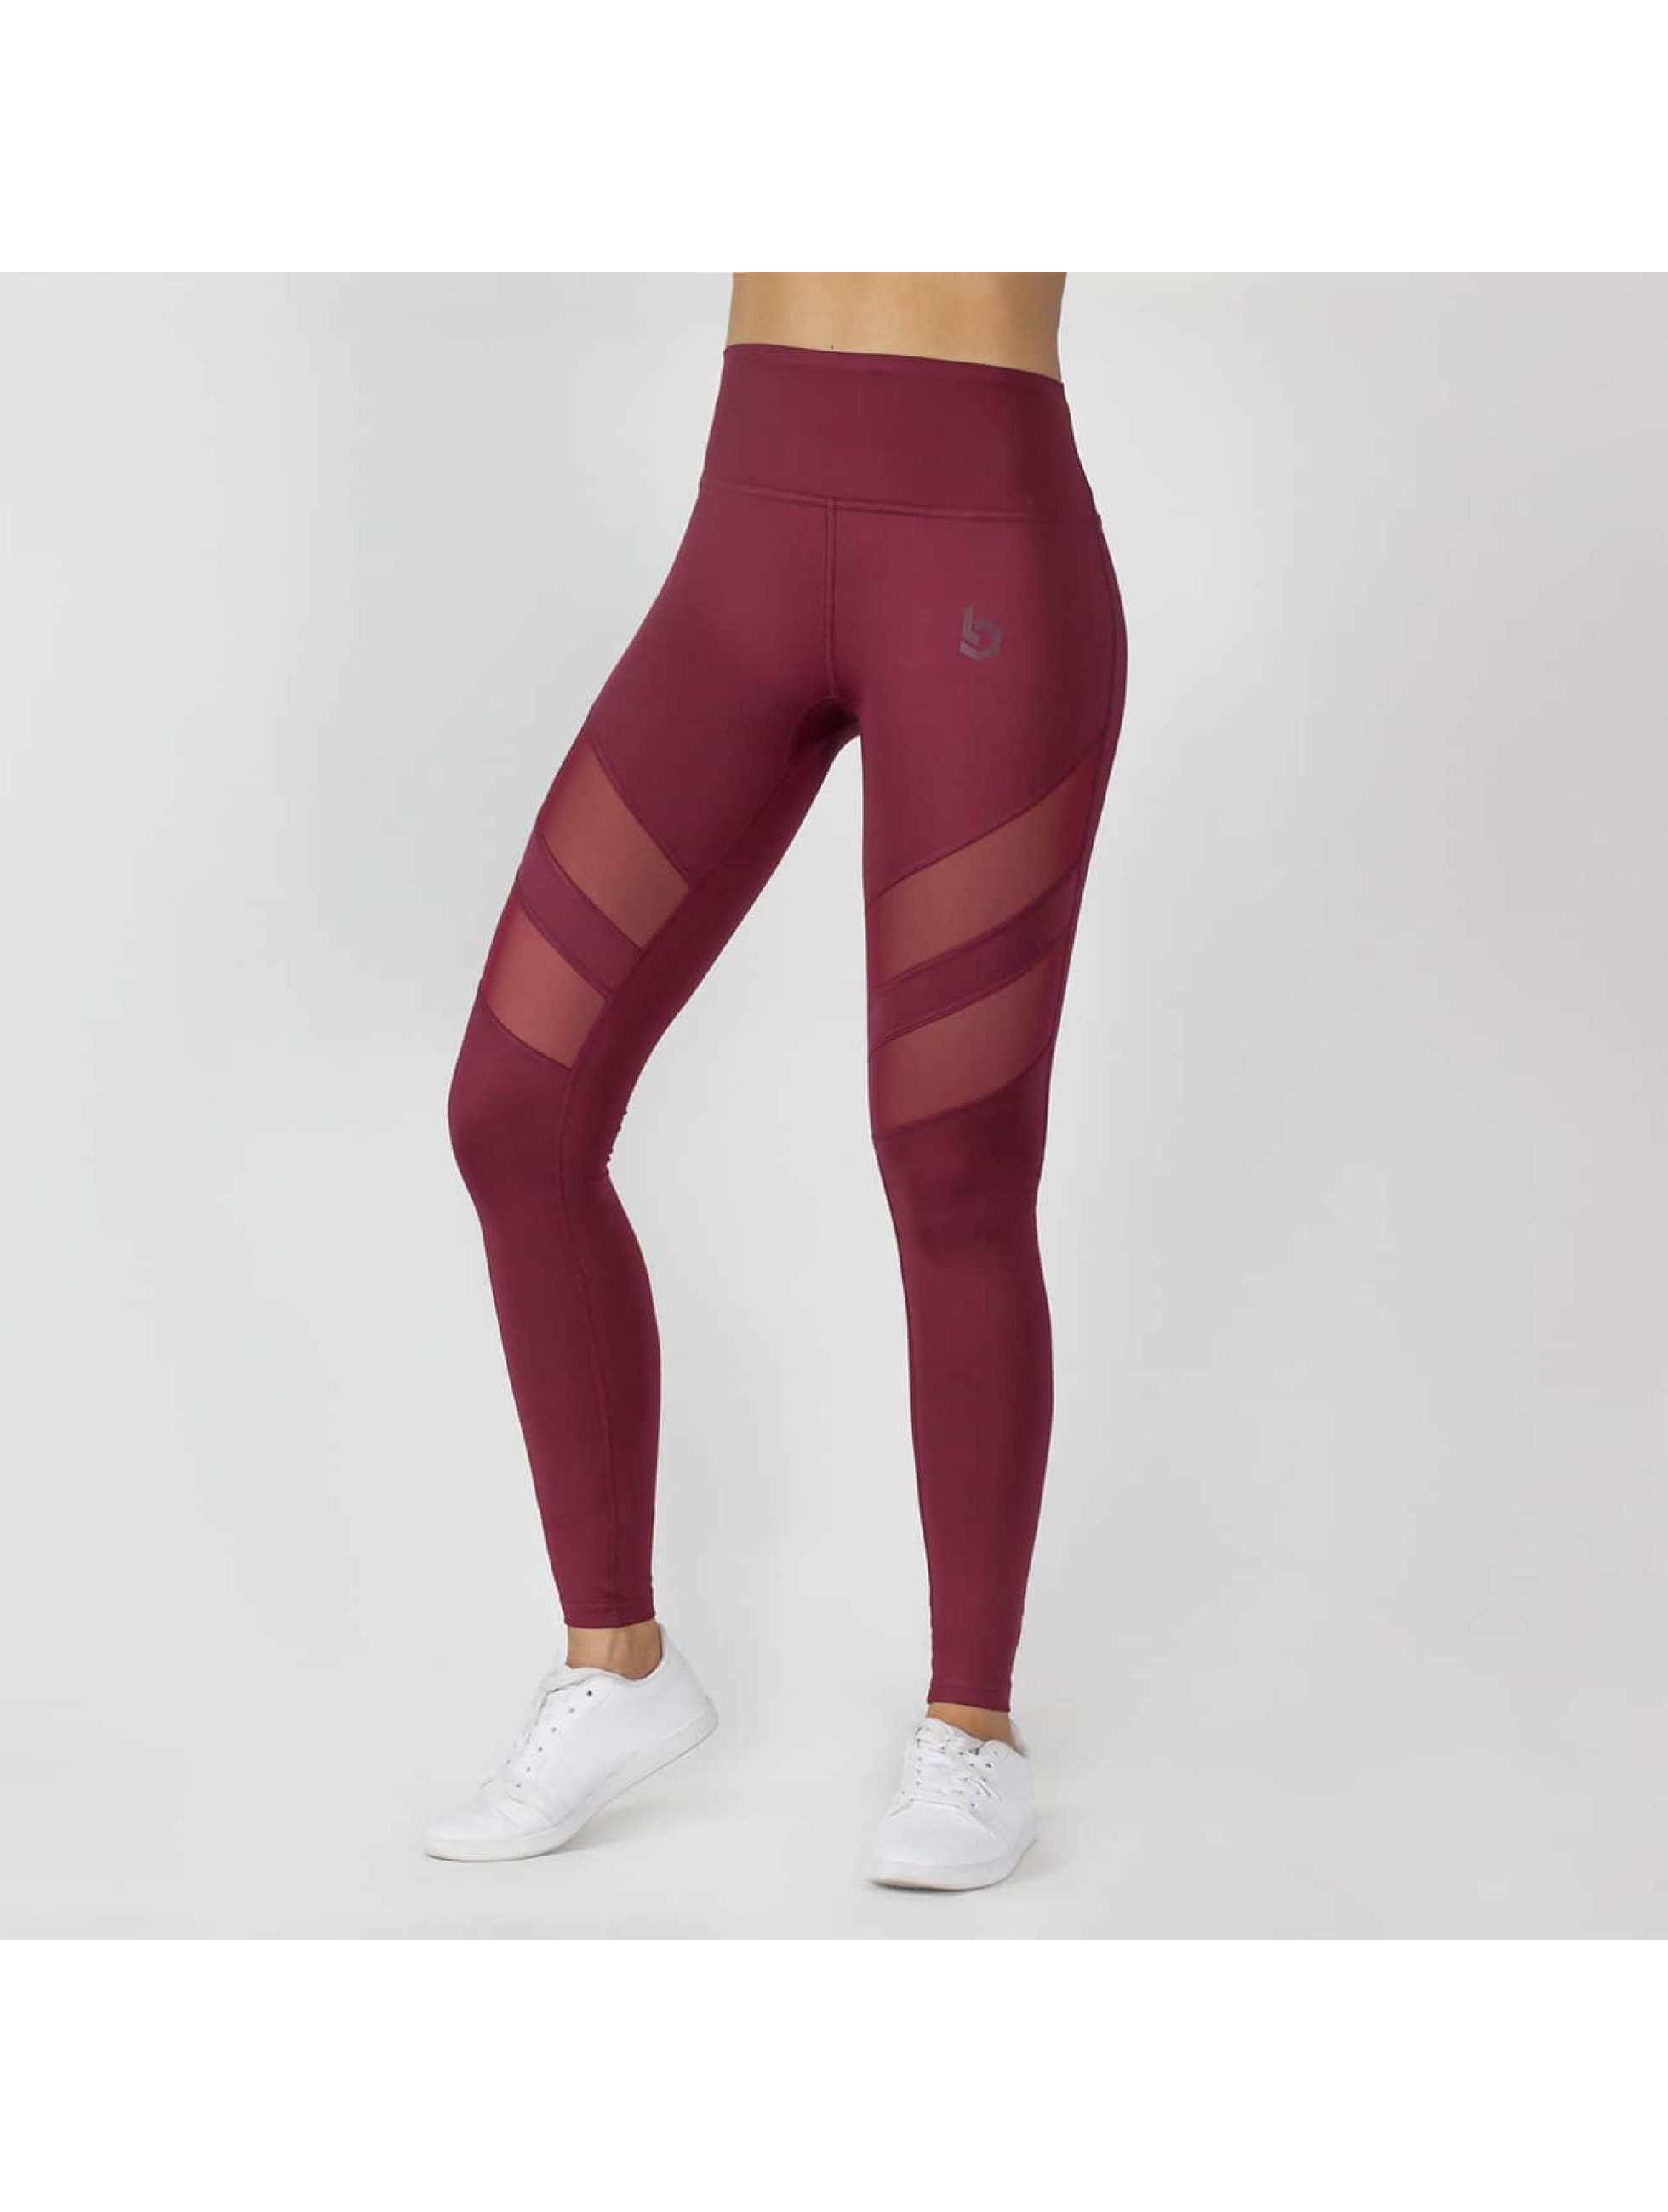 Beyond Limits Legging Super High Waist Mesh rood